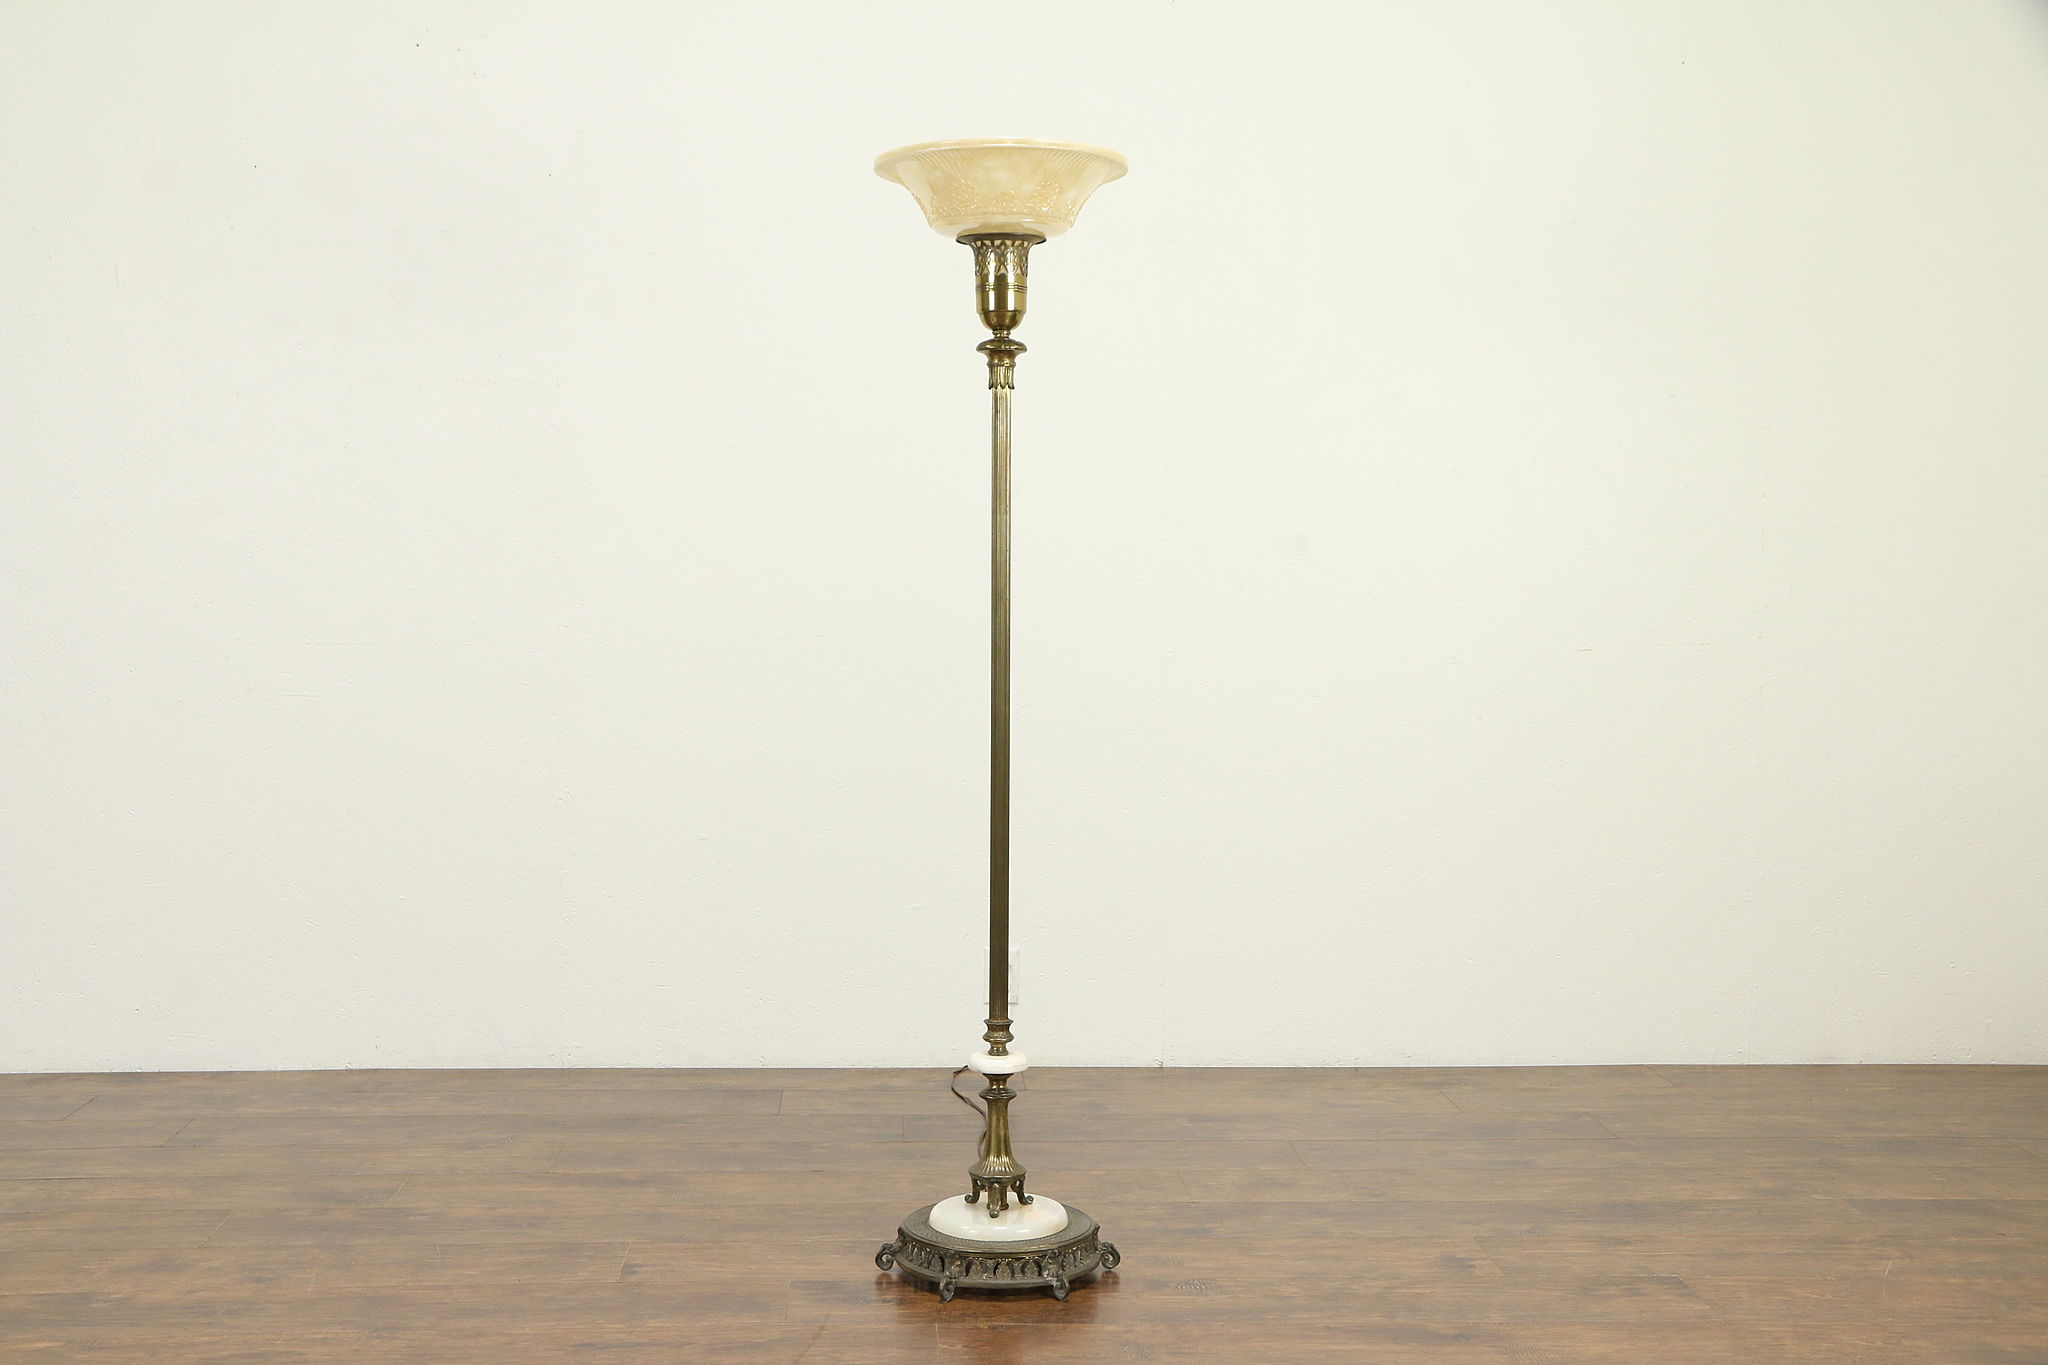 Sold Torchiere Vintage Floor Lamp Onyx Mounts Embossed Glass Shade 32129 Harp Gallery Antiques Furniture